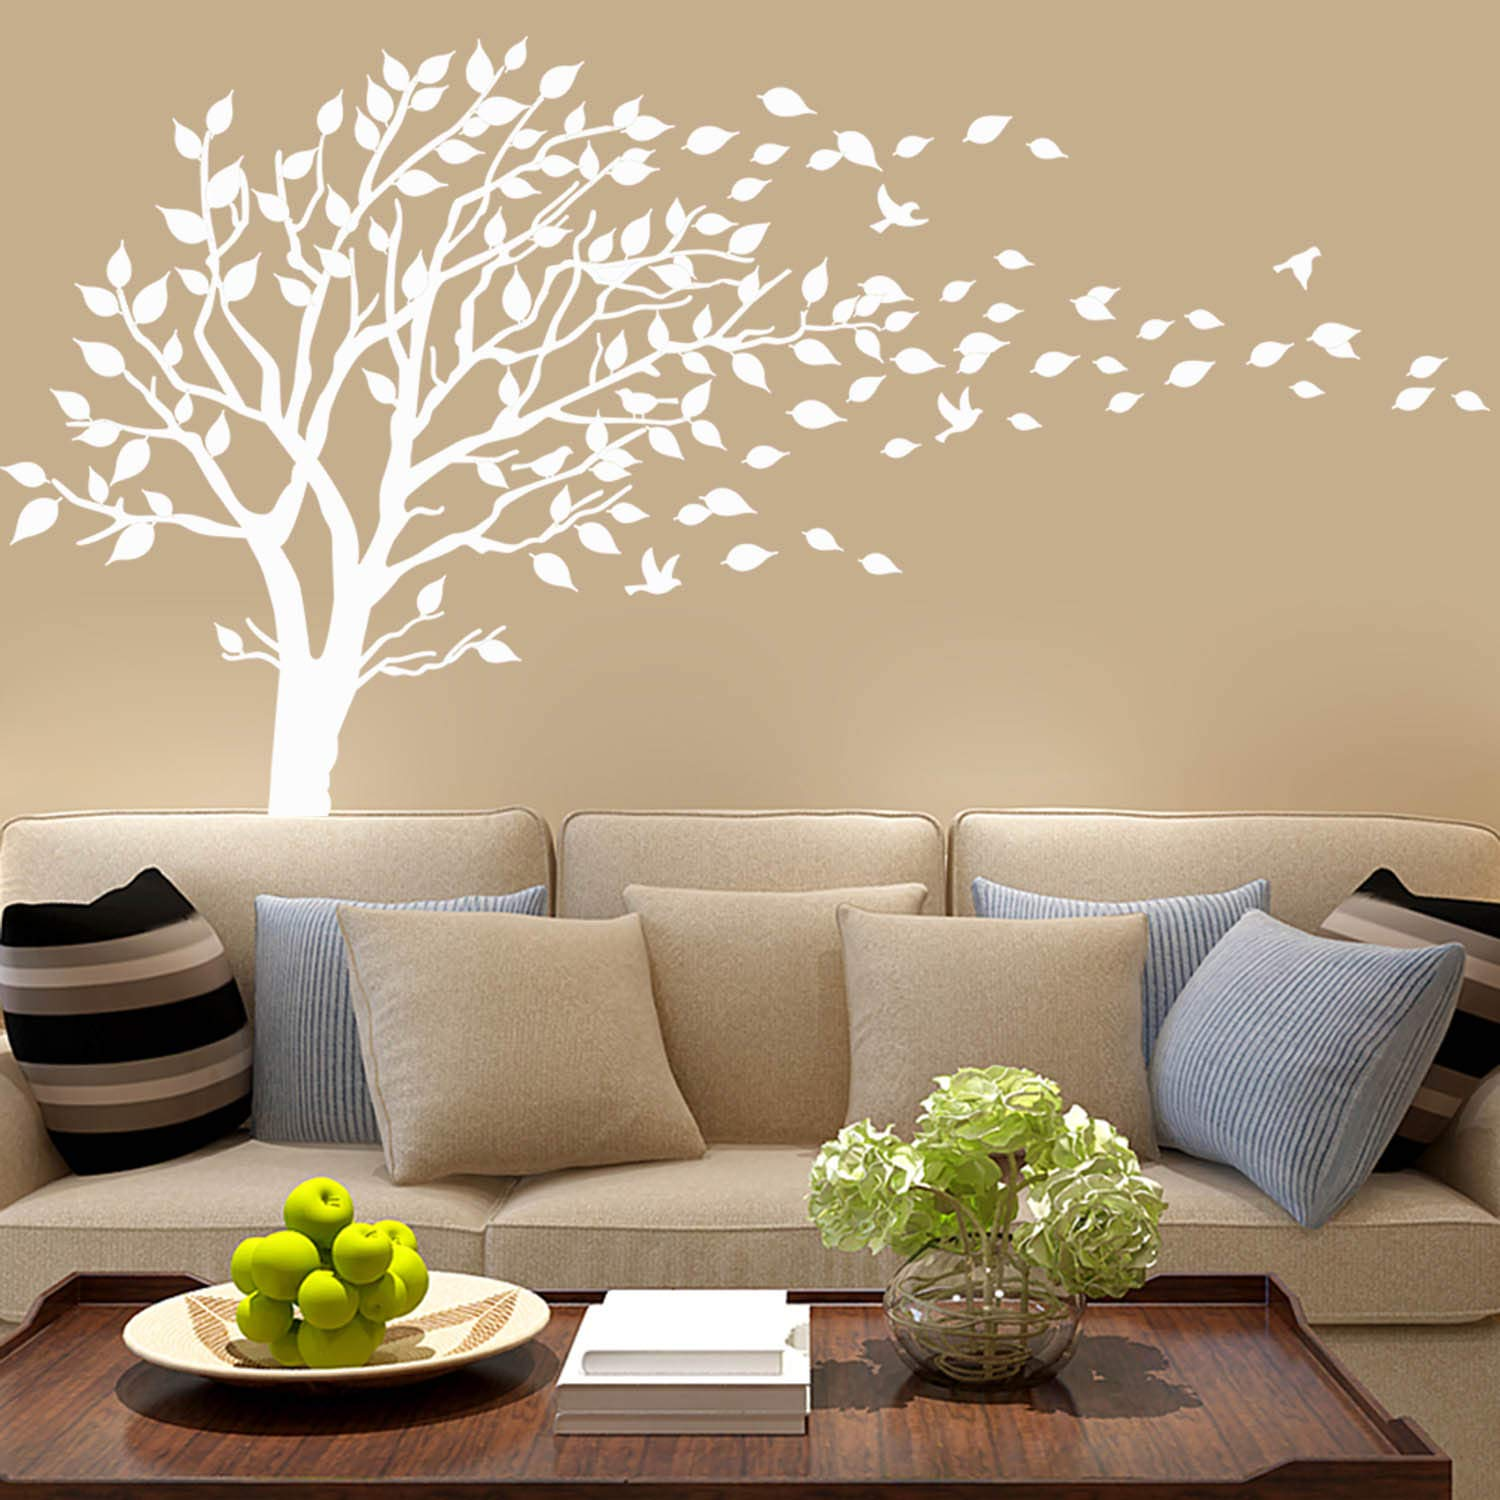 Many colours Decal Tree With Leaves Blowing In The Wind Amazing Wall Stickers